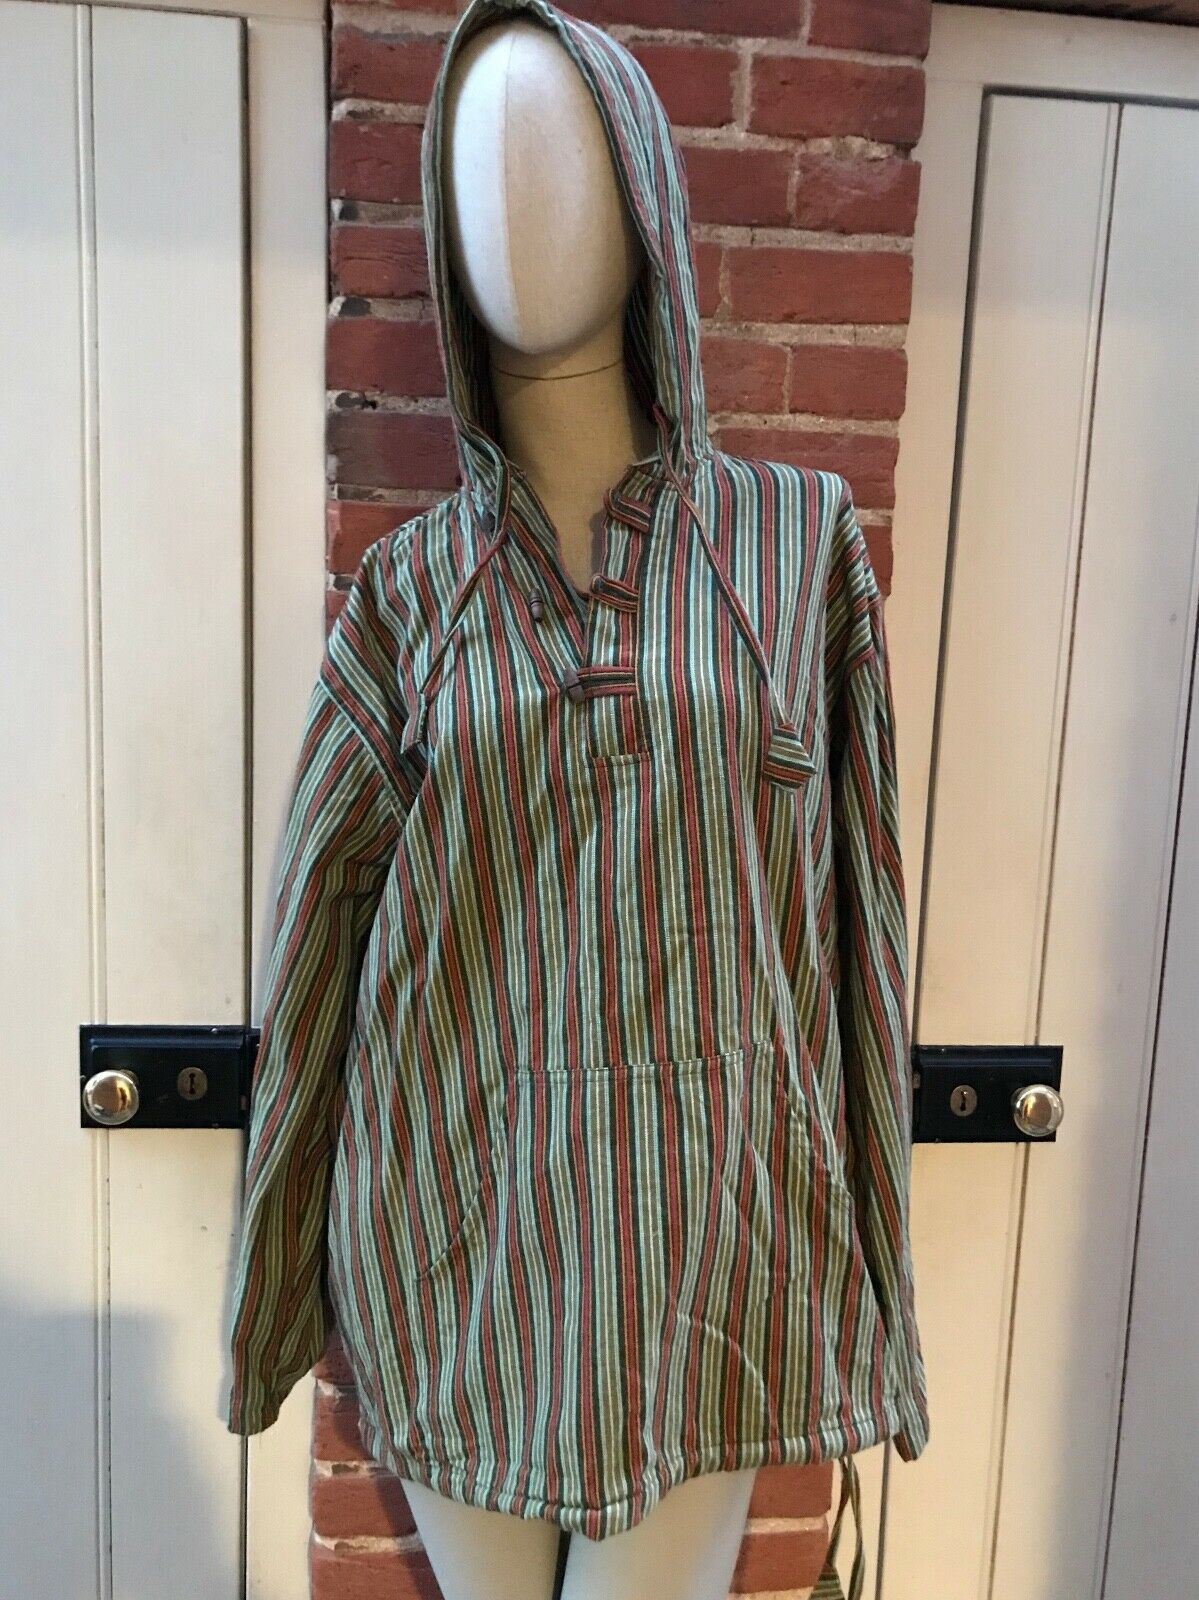 Bares Nepal Himalayan Green  Striped Cotton Gheri Hooded Jumper Top XXL